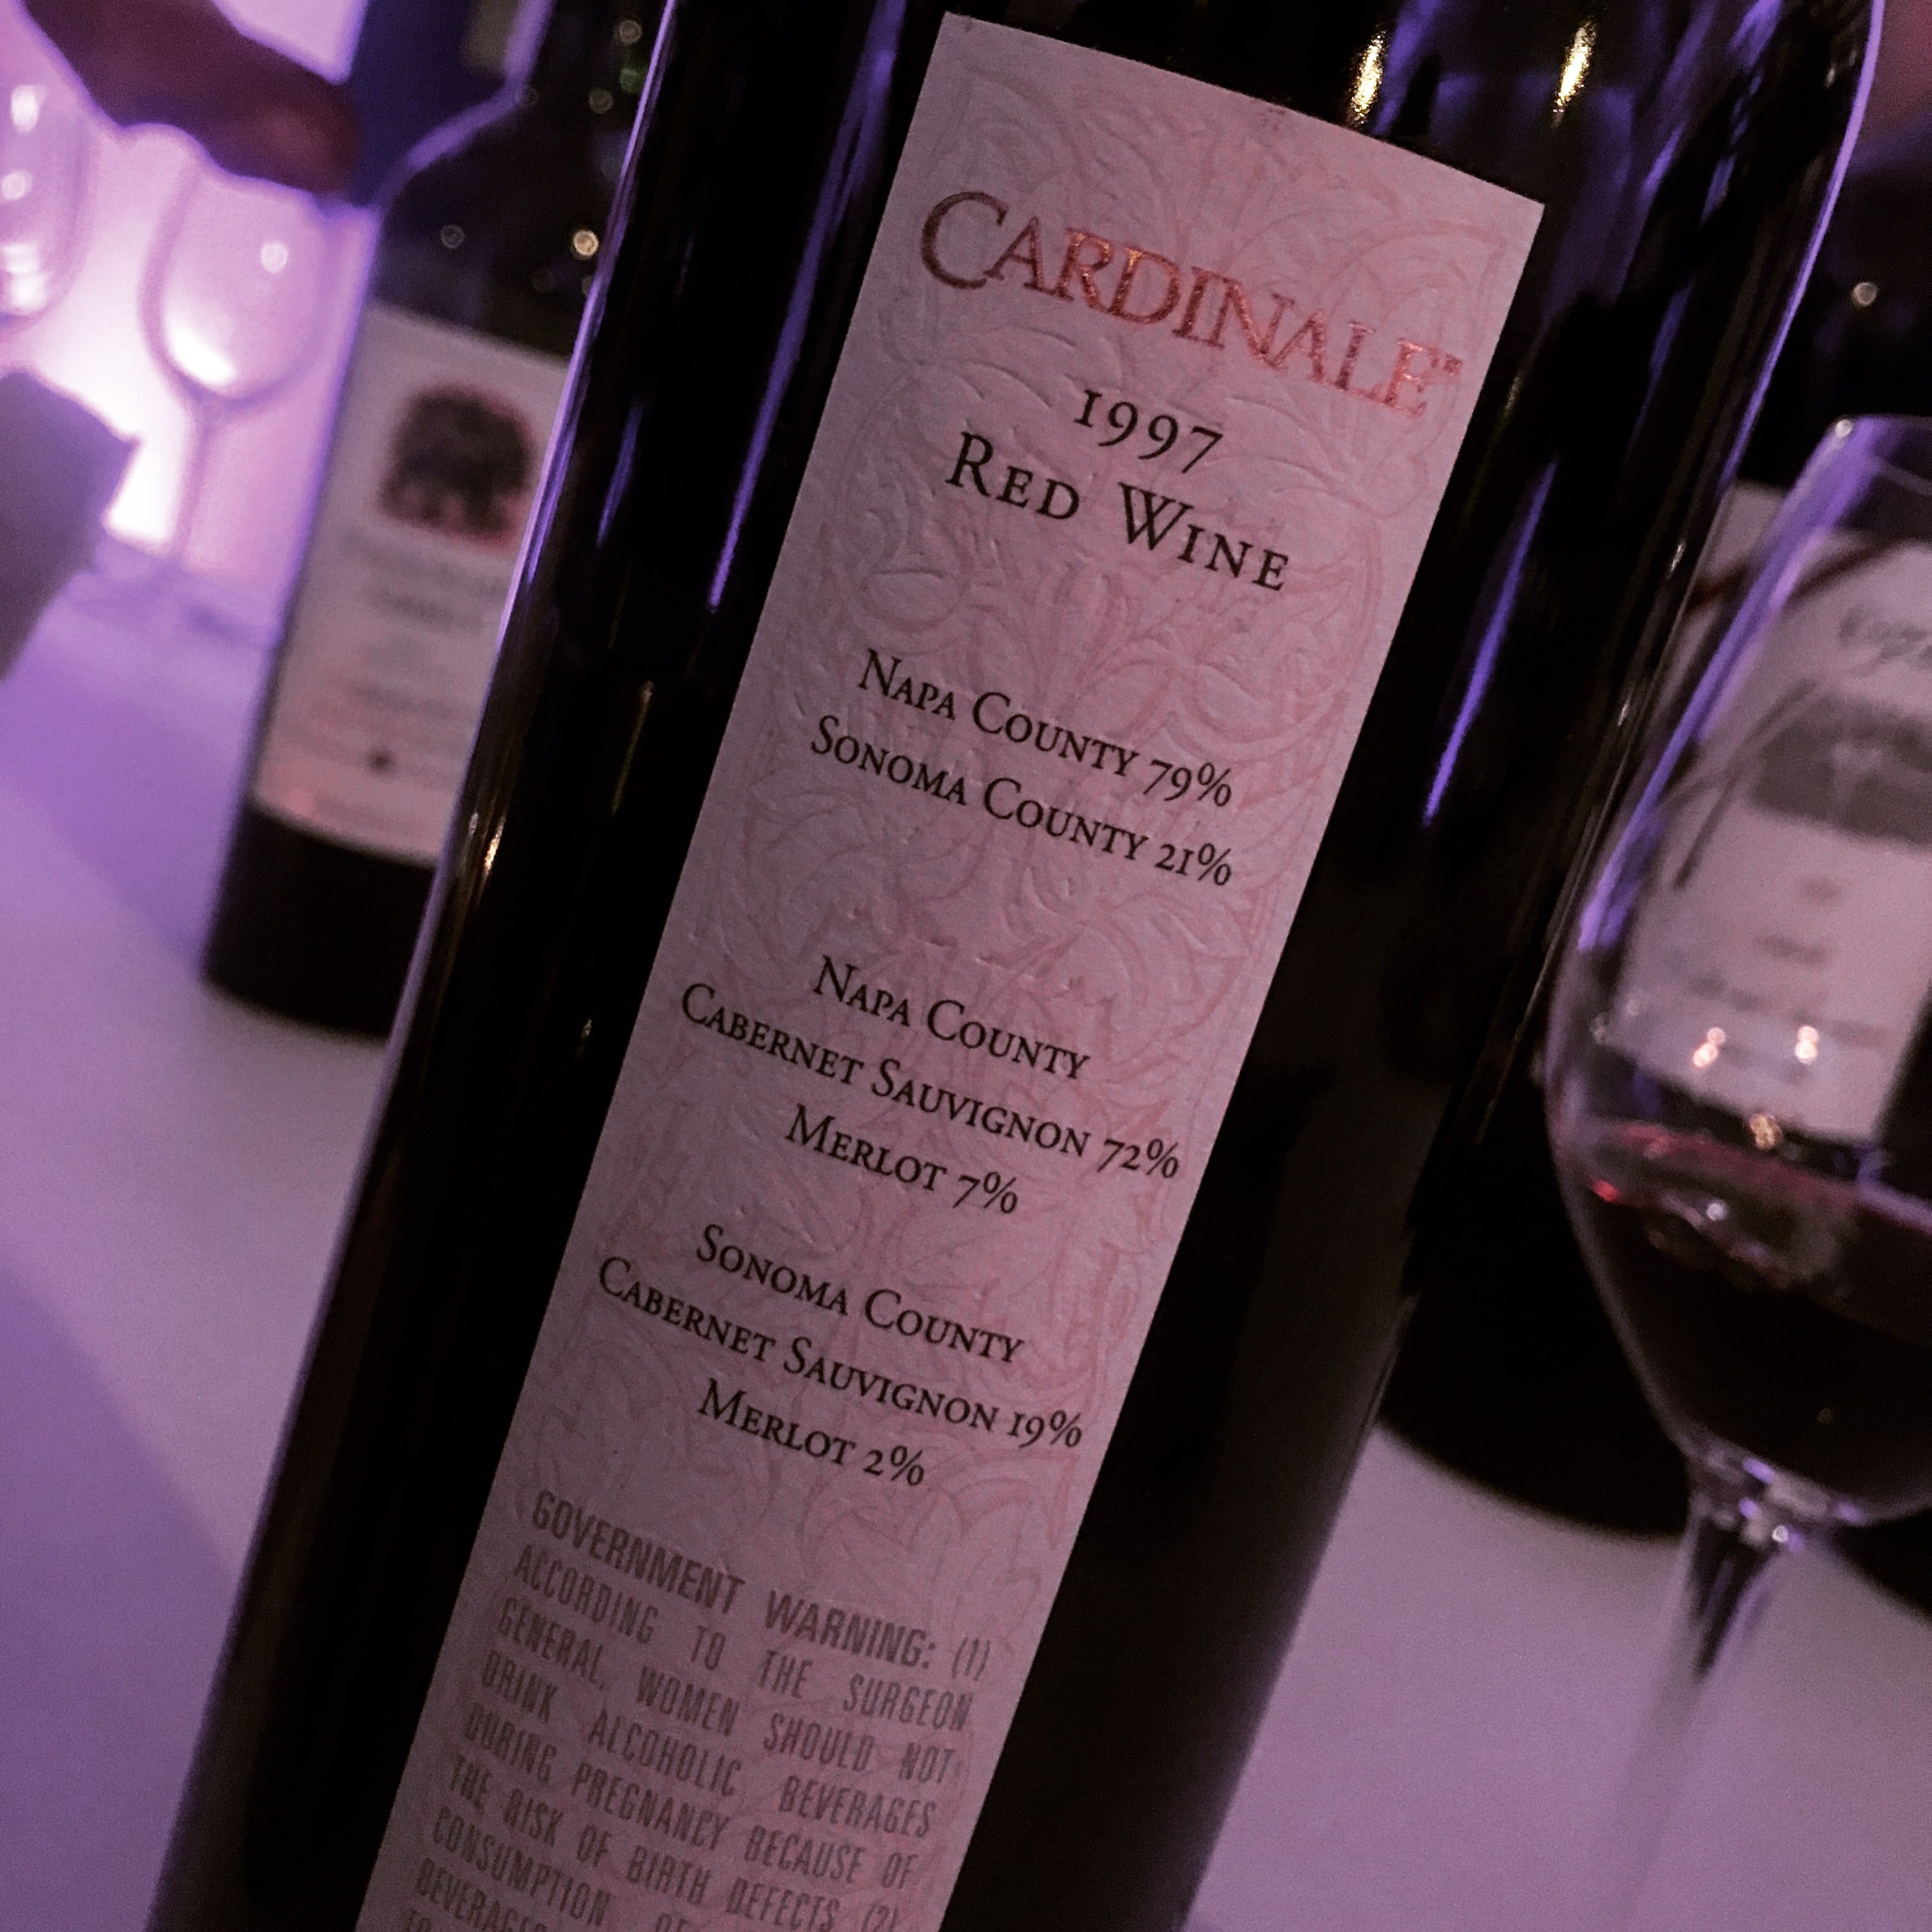 Cardinale Red 1997